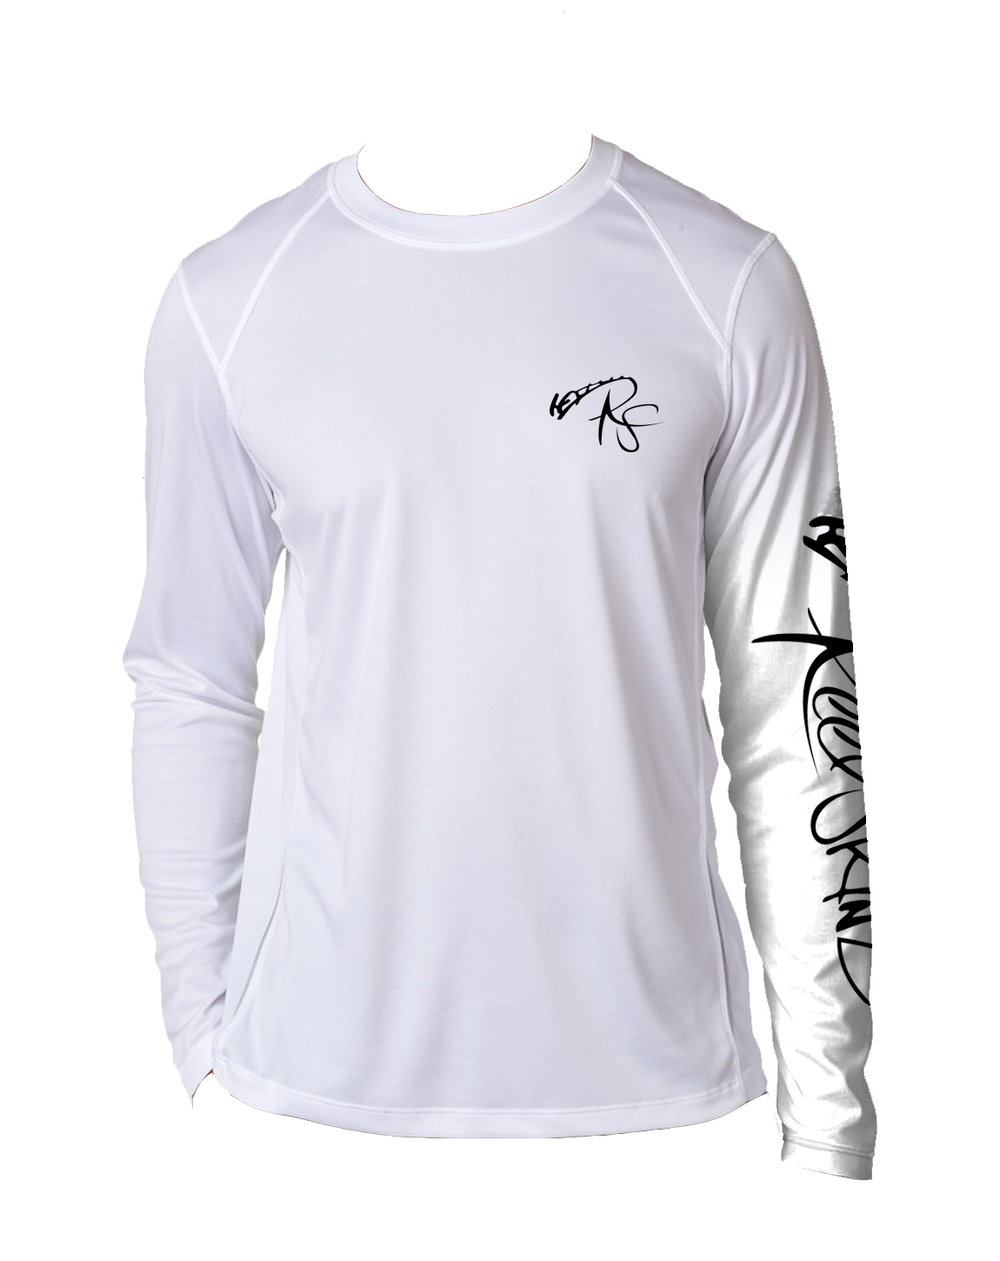 Sword skinz drawing longsleeve high performance spf for Spf shirts for fishing